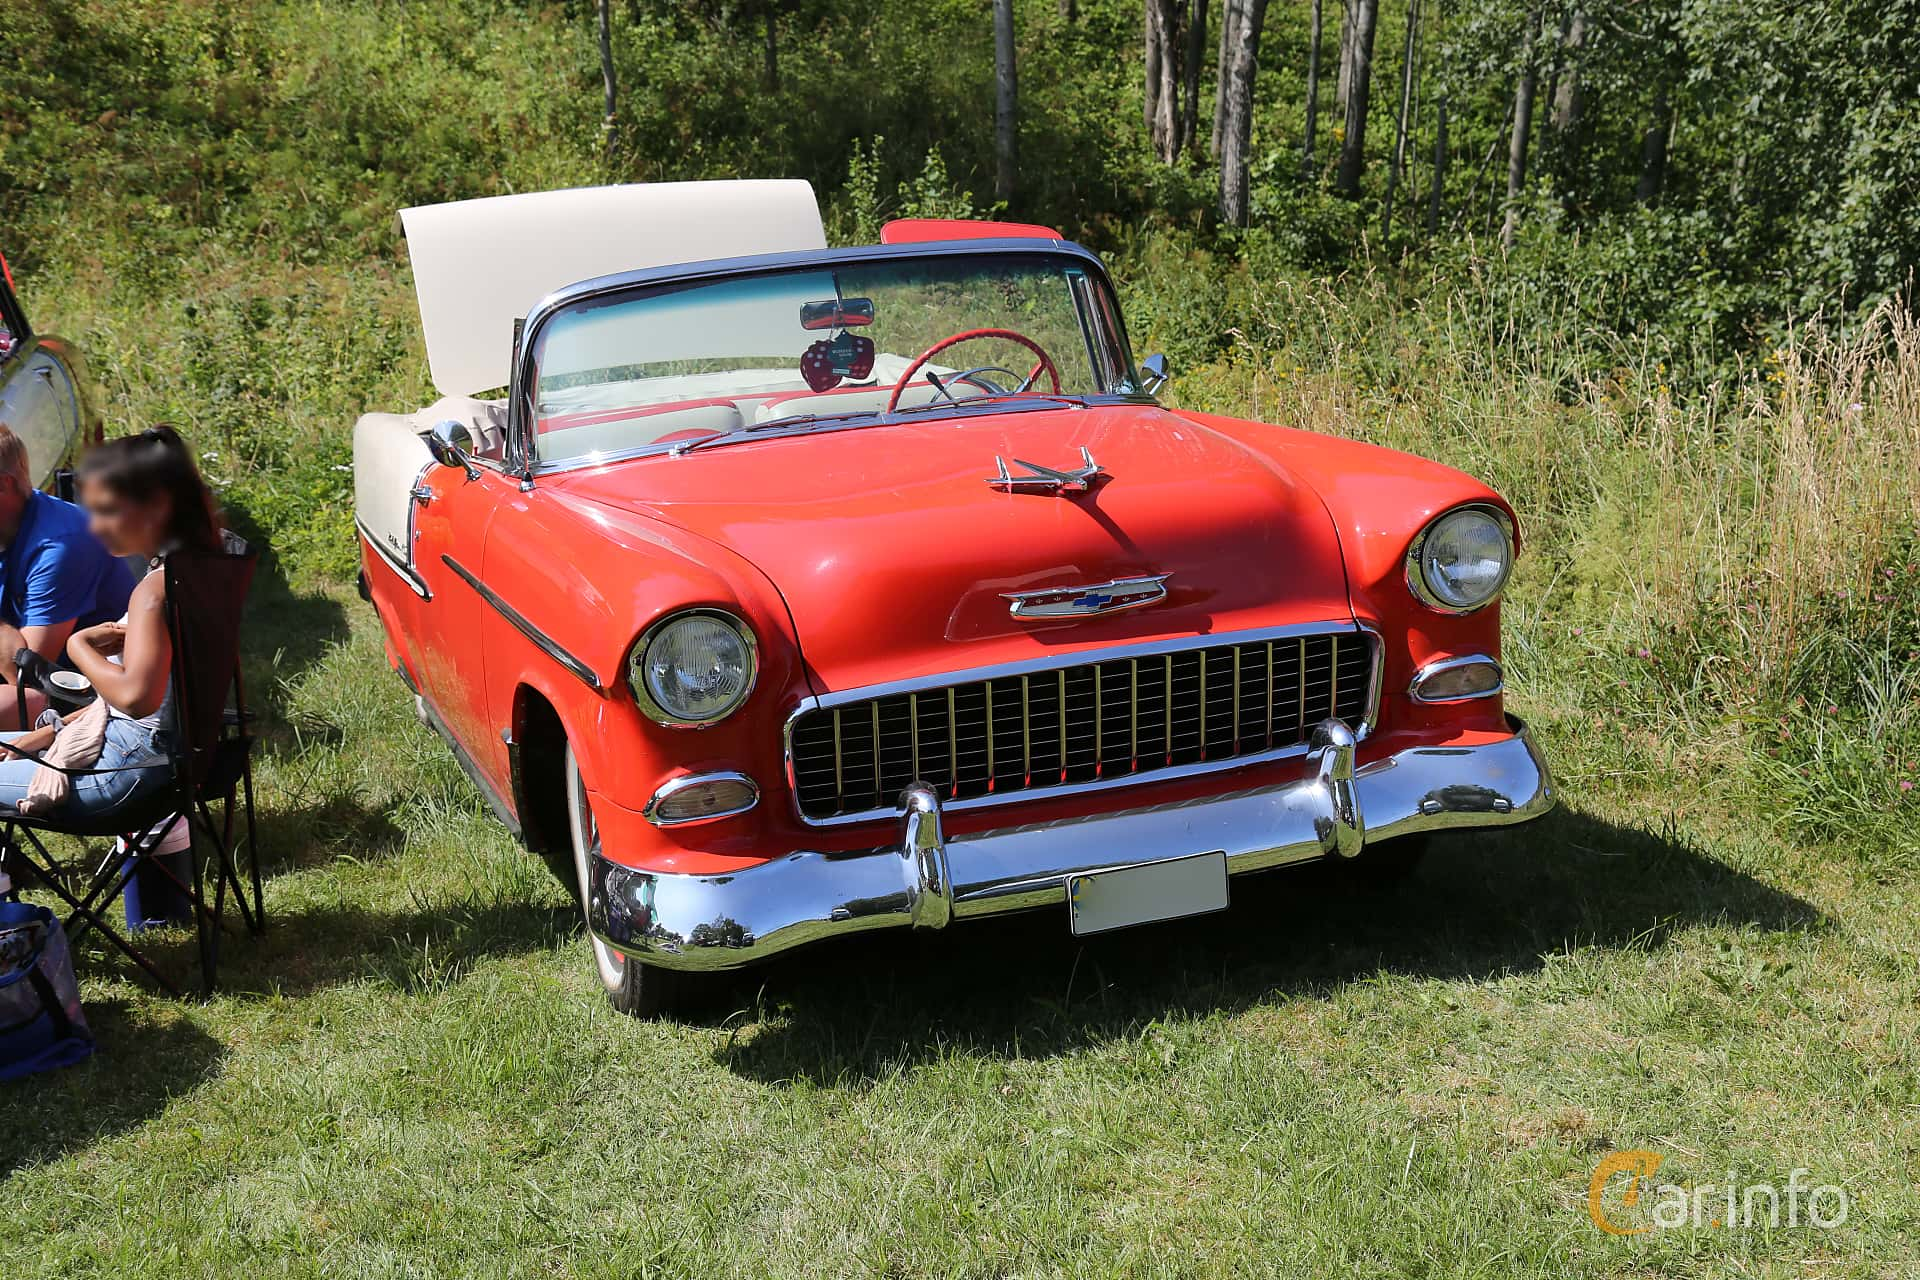 Chevrolet Bel Air Convertible 4.3 V8 Powerglide, 165hp, 1955 at A-bombers - Old Style Weekend Backamo 2019